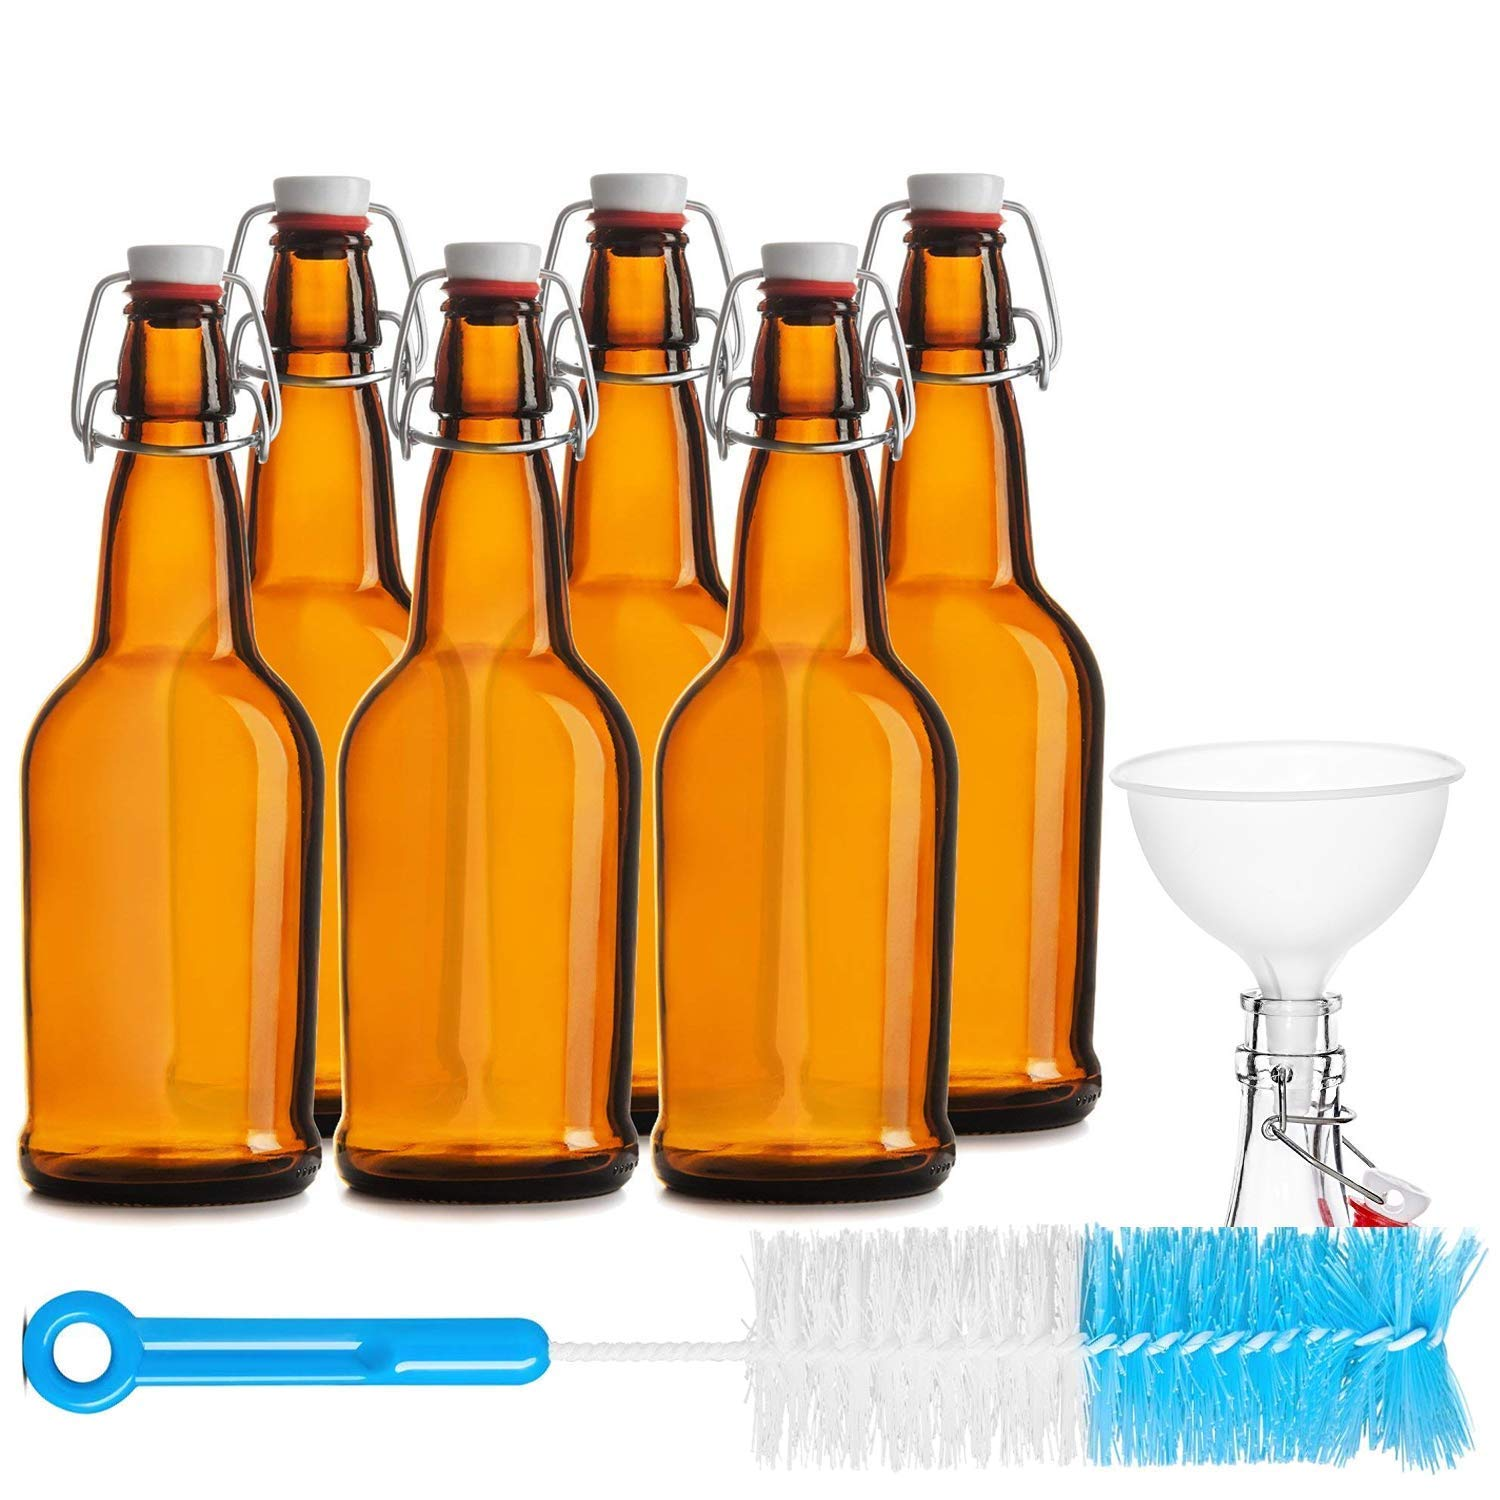 Chefs Star CASE OF 6-16 oz. EASY CAP Beer Bottles with Funnel and Cleaning Brush - AMBER